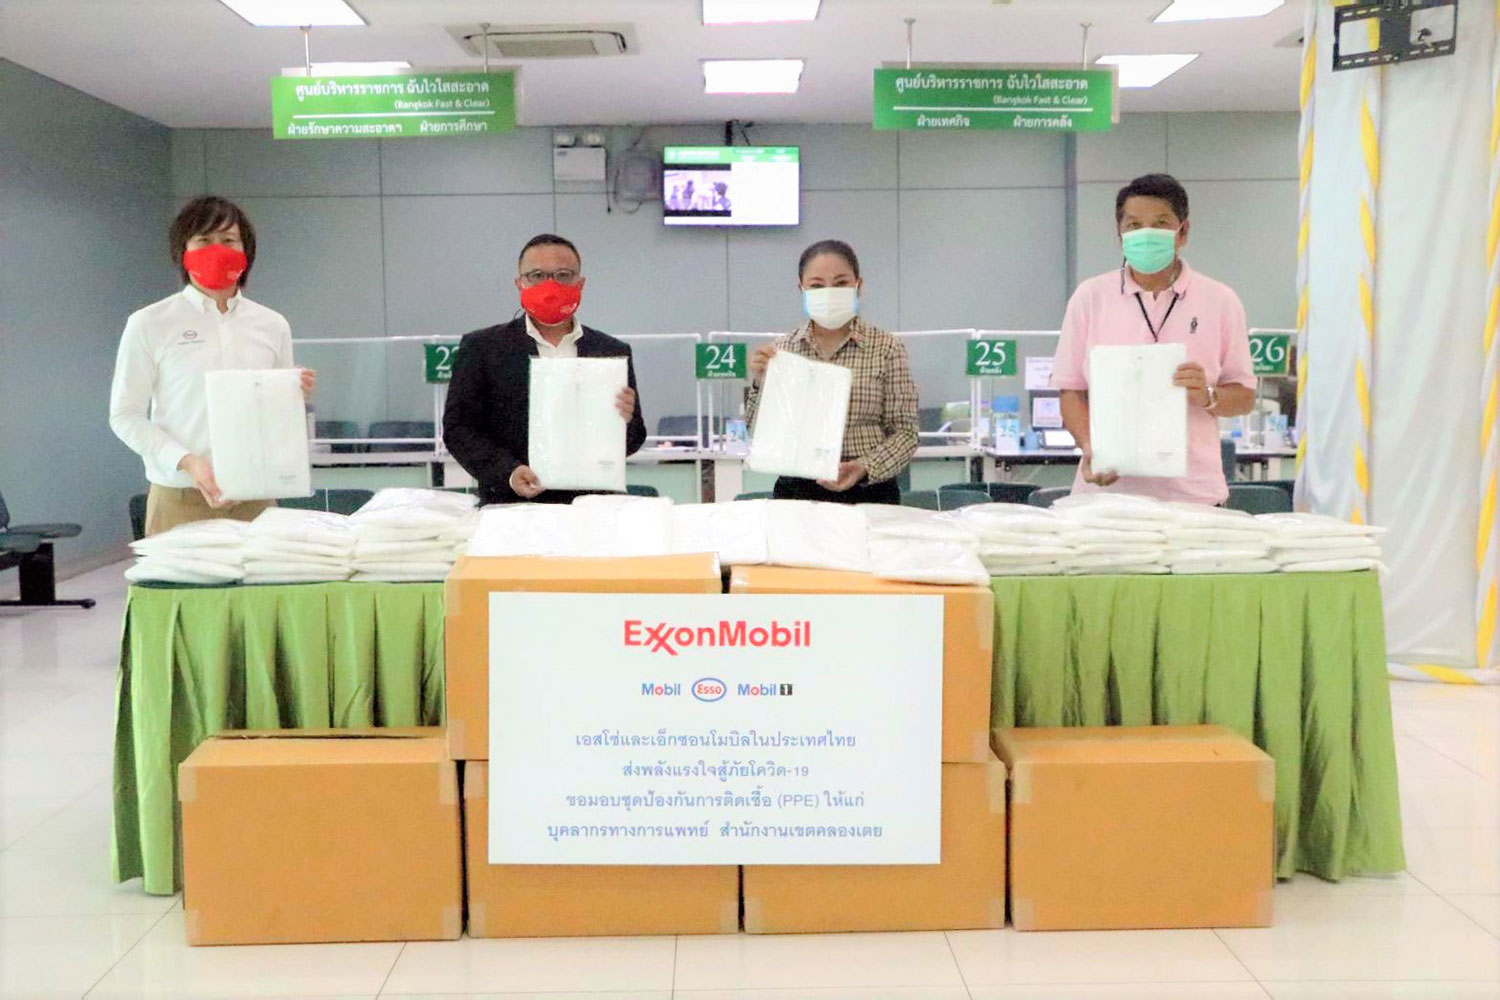 Esso and ExxonMobil donate PPE to Klong Toey District for battling COVID-19